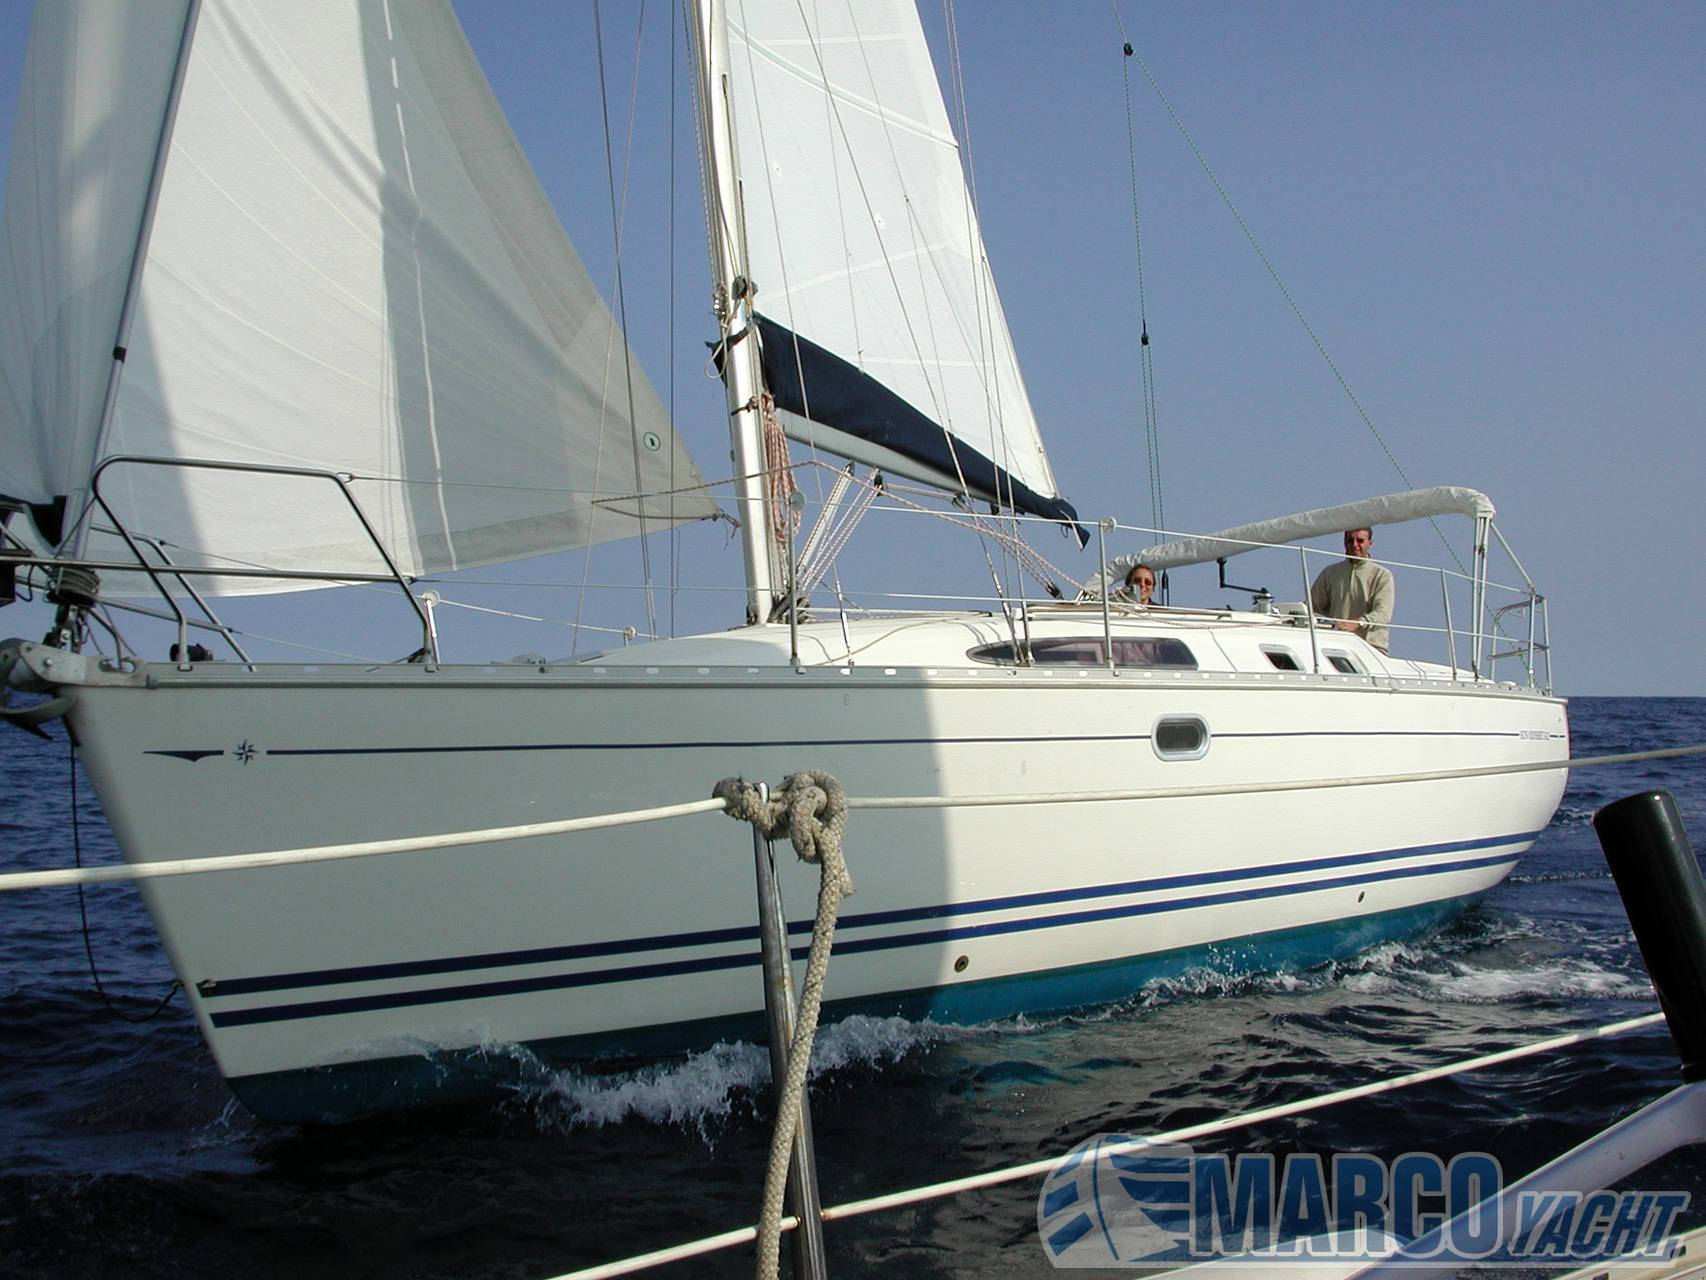 JEANNEAU Sun odyssey 34.2 Sailing boat used for sale